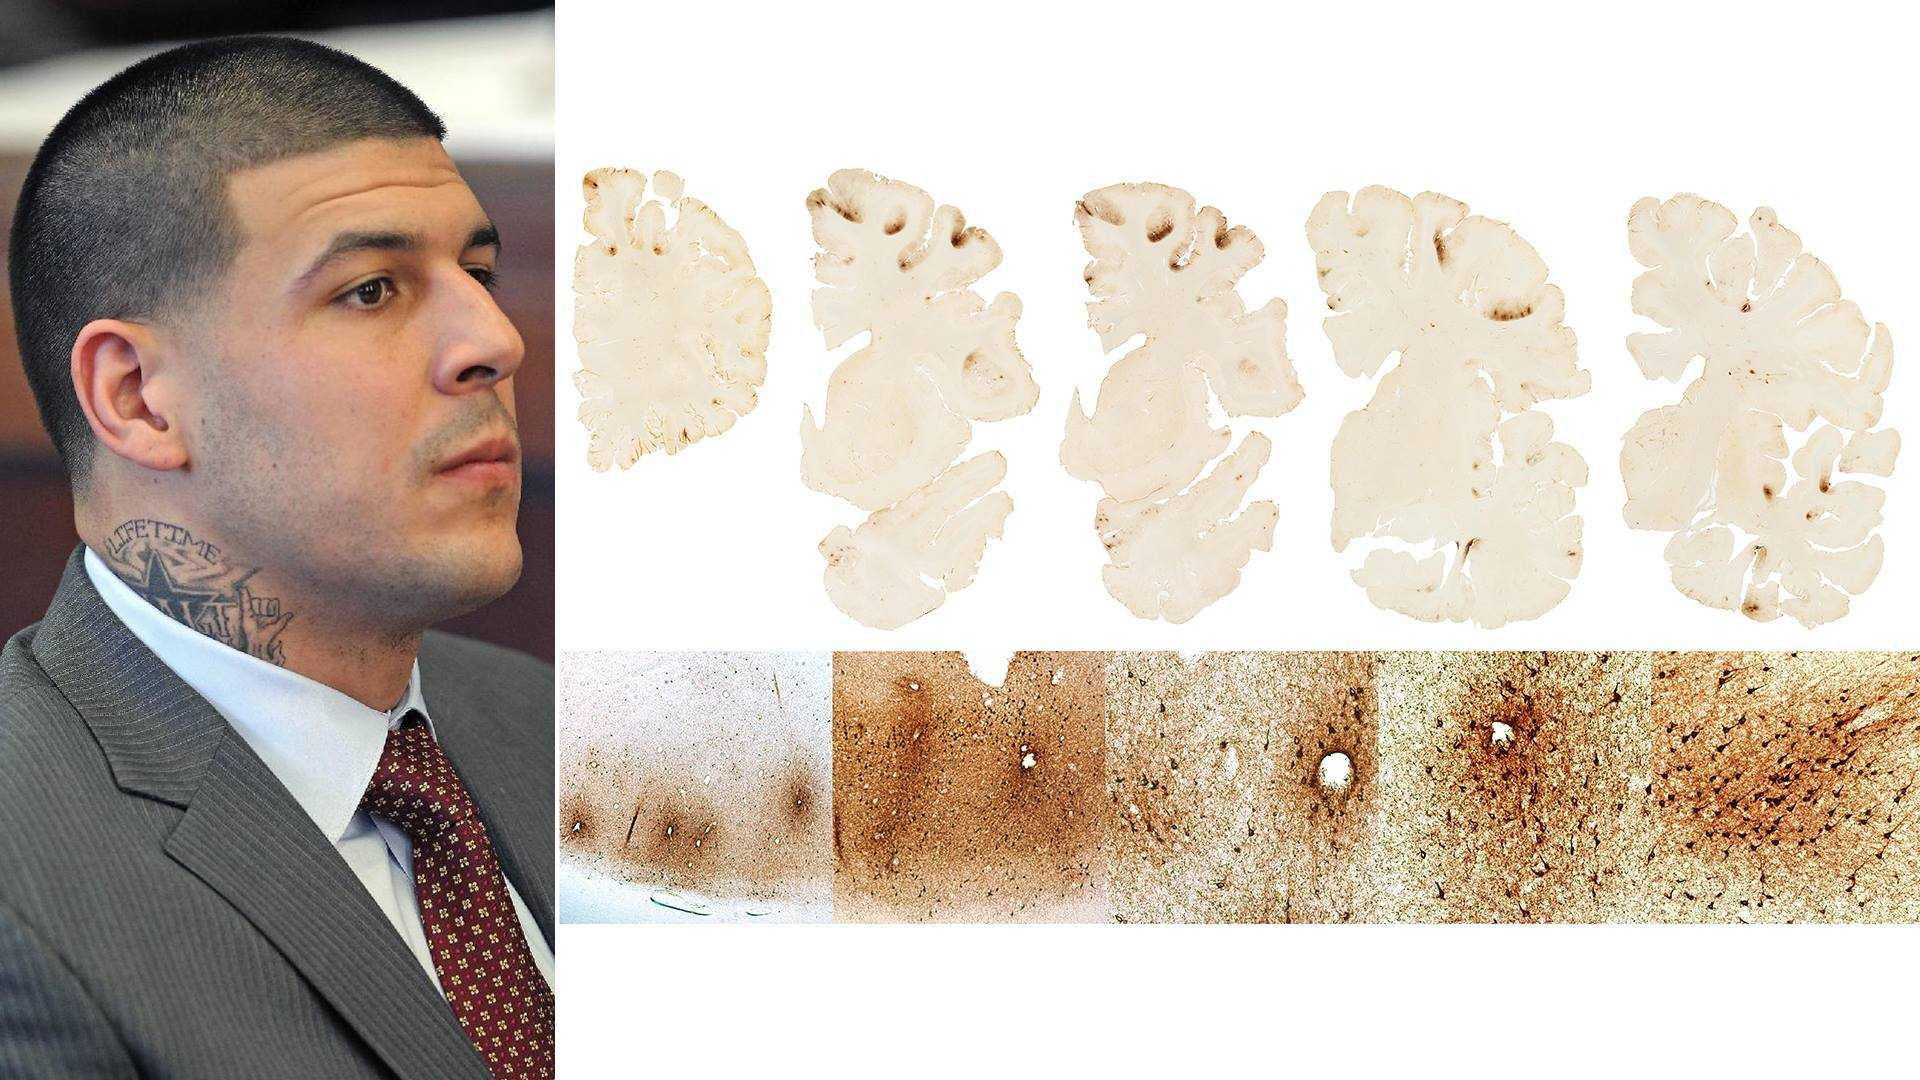 Aaron Hernandez and CTE brain image from BU CTE Study